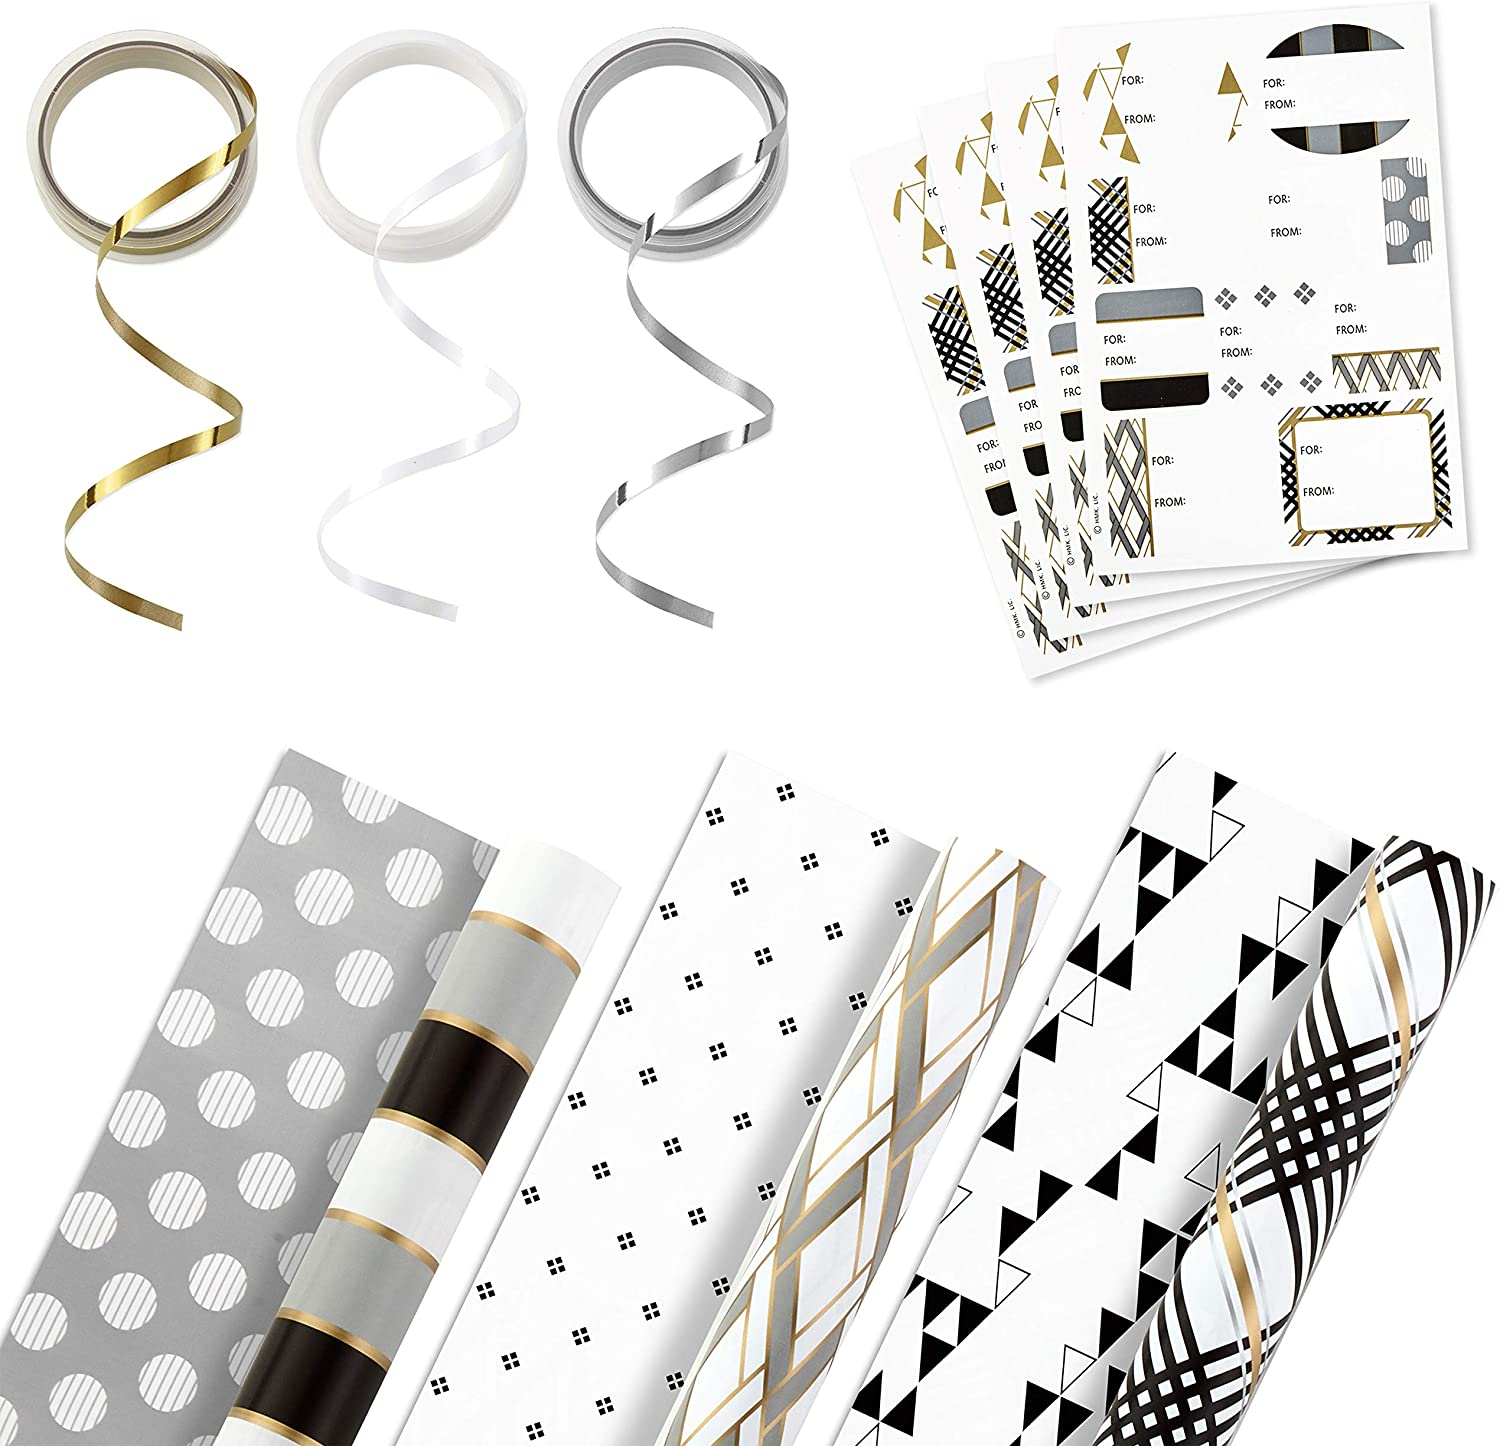 Hallmark Reversible Wrapping Paper Bundle with Ribbon & Gift Tag Stickers- Black, Gold Stripes, Plaid (3 Pack, 120 sq. ft. ttl, 30 Yds. Mini Ribbon, 36 Labels) for Graduations, Weddings, Christmas